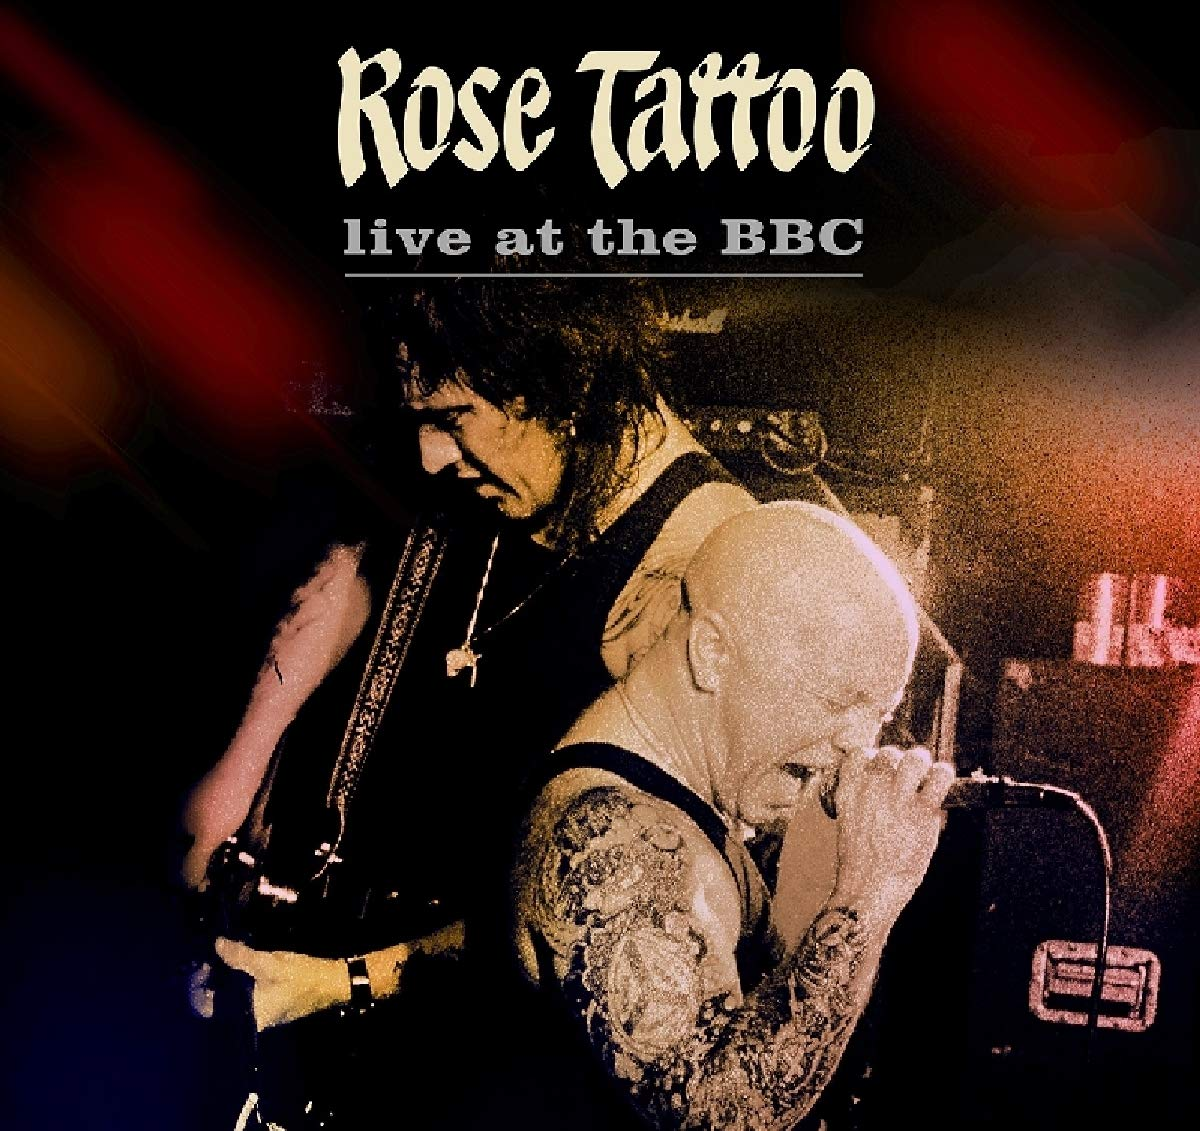 CD : Rose Tattoo - On Air In 81: Live At The Bbc & Other Transmissions (With DVD, United Kingdom - Import, NTSC Region 0)